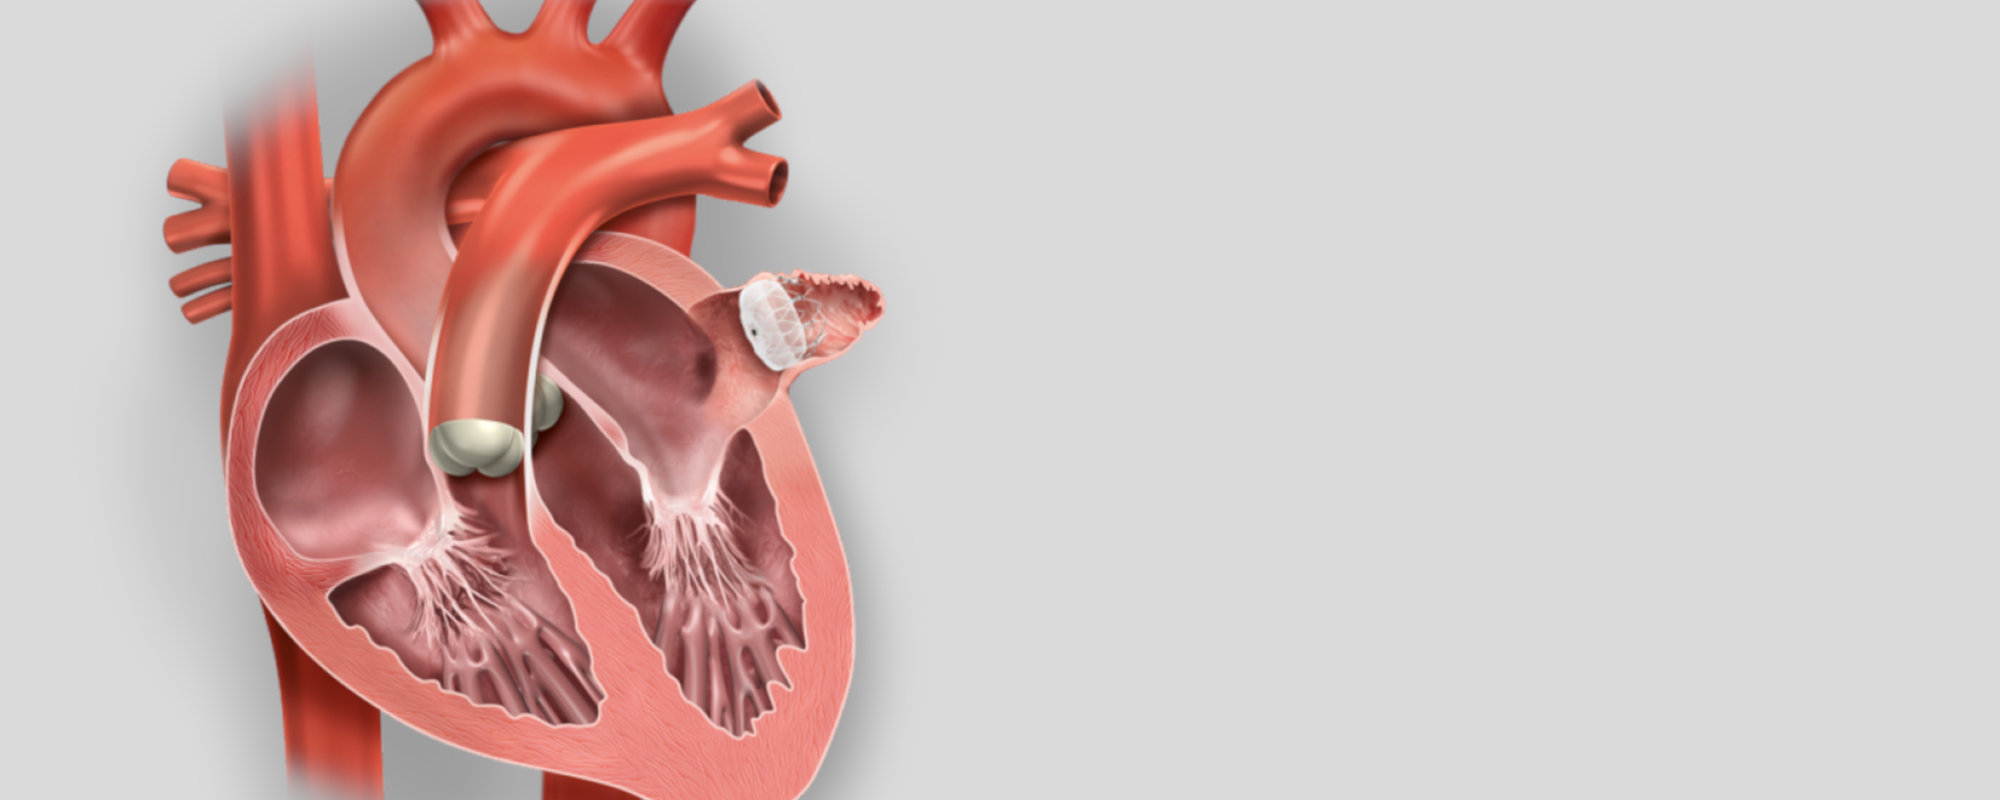 Left Atrial Appendage Closure with the WATCHMAN™ Device